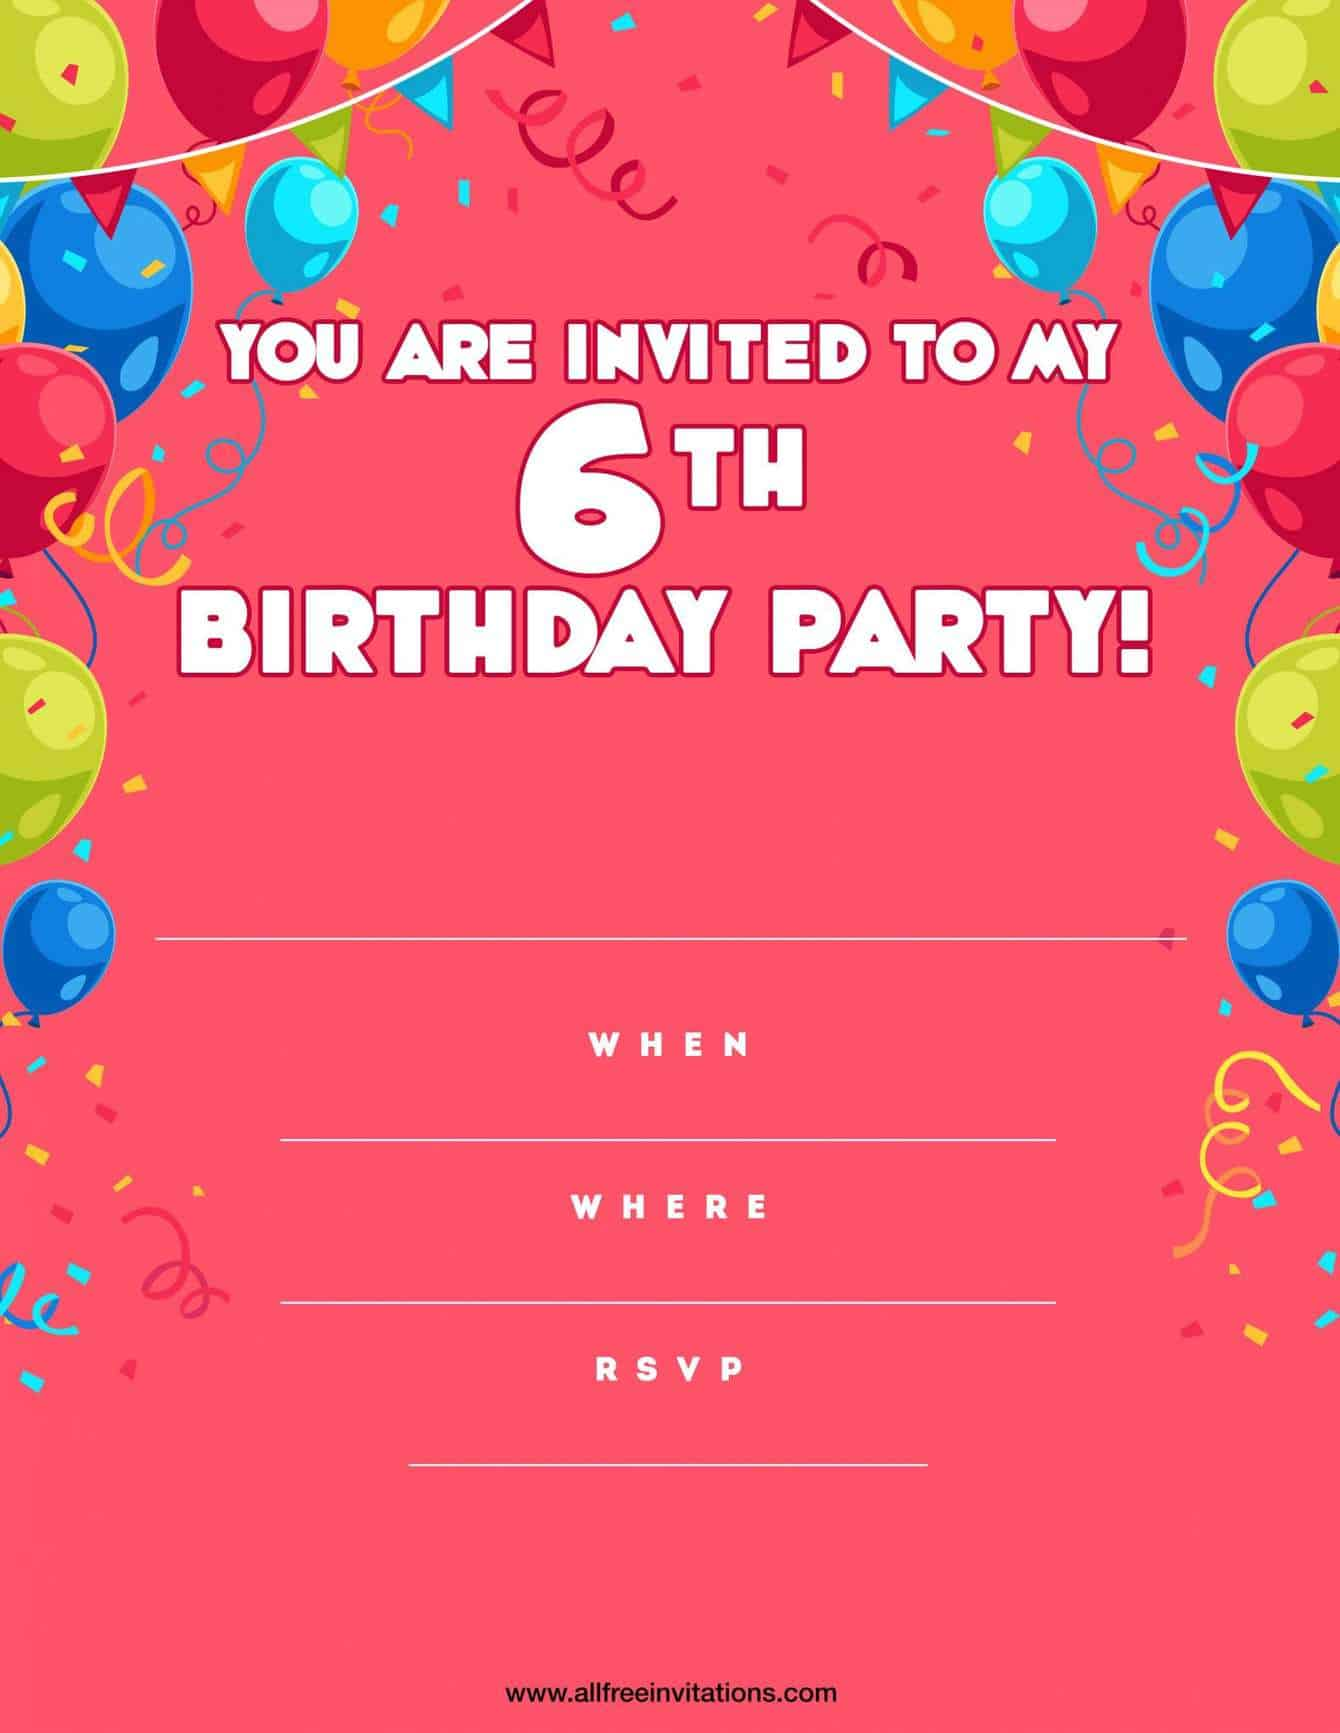 6th Birthday Party Invitation Pink Balloons Buntings